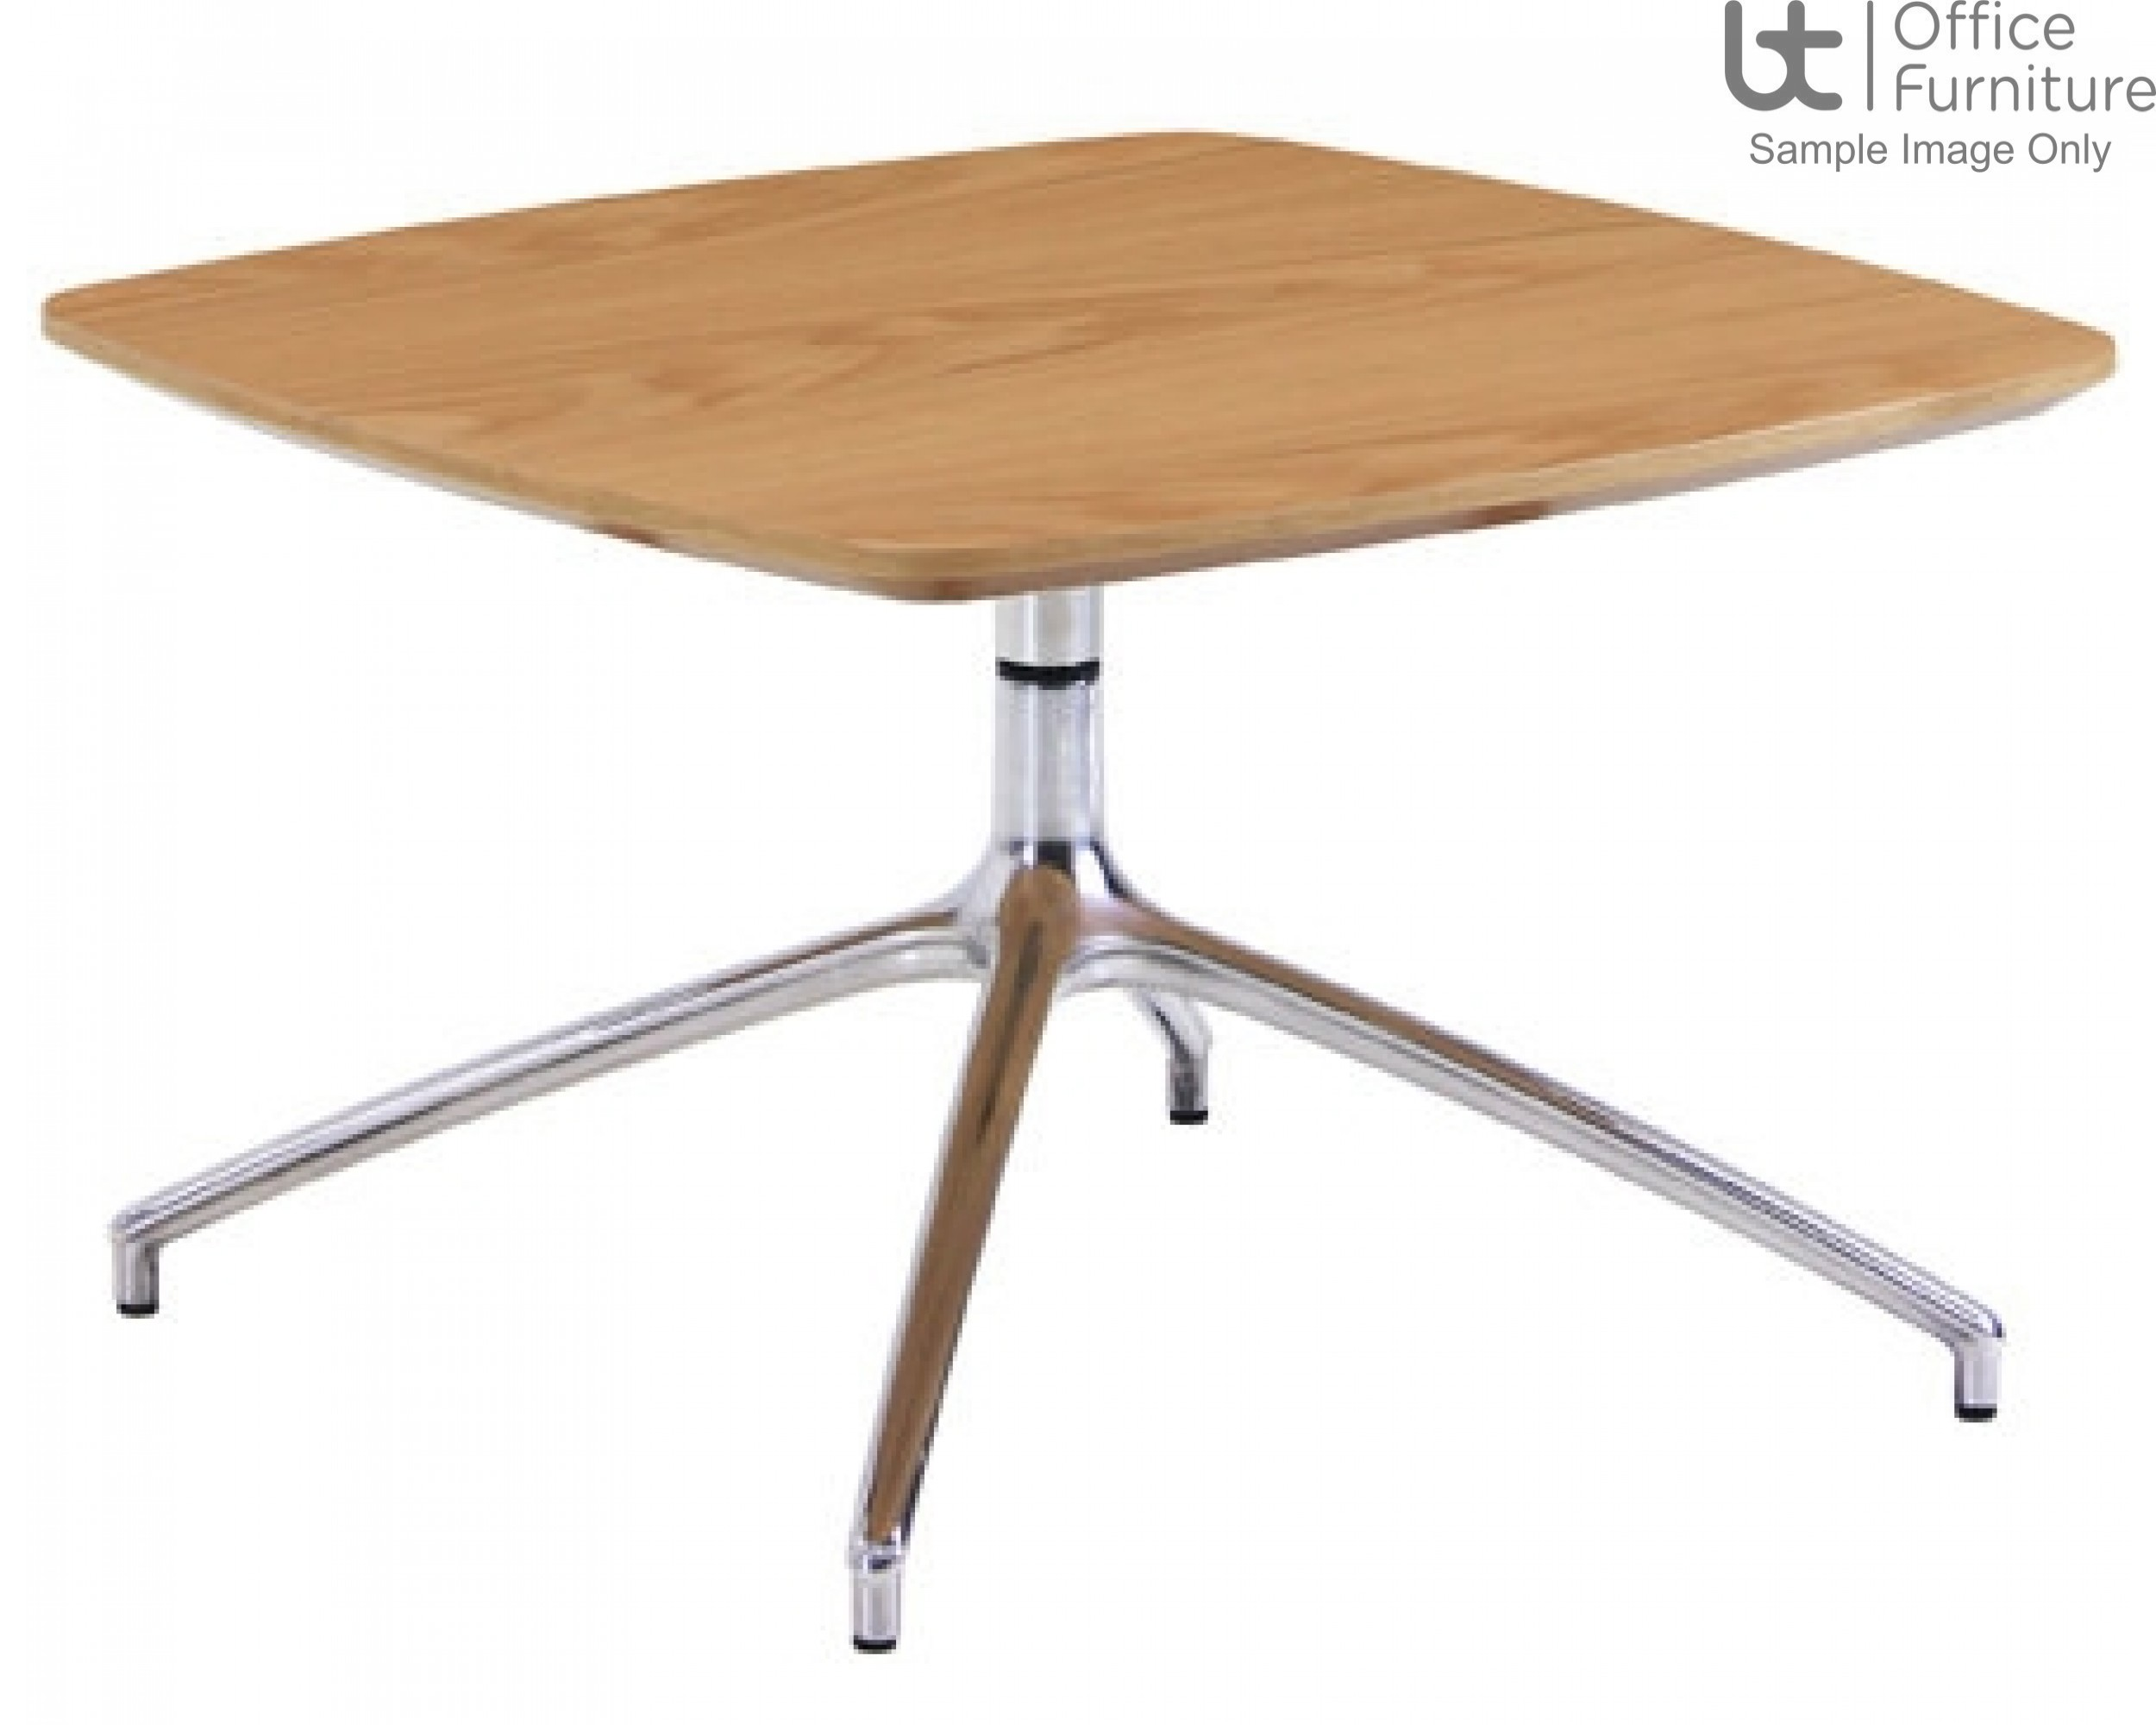 Verco Soft Seating - Song Double Barreled Coffee Table